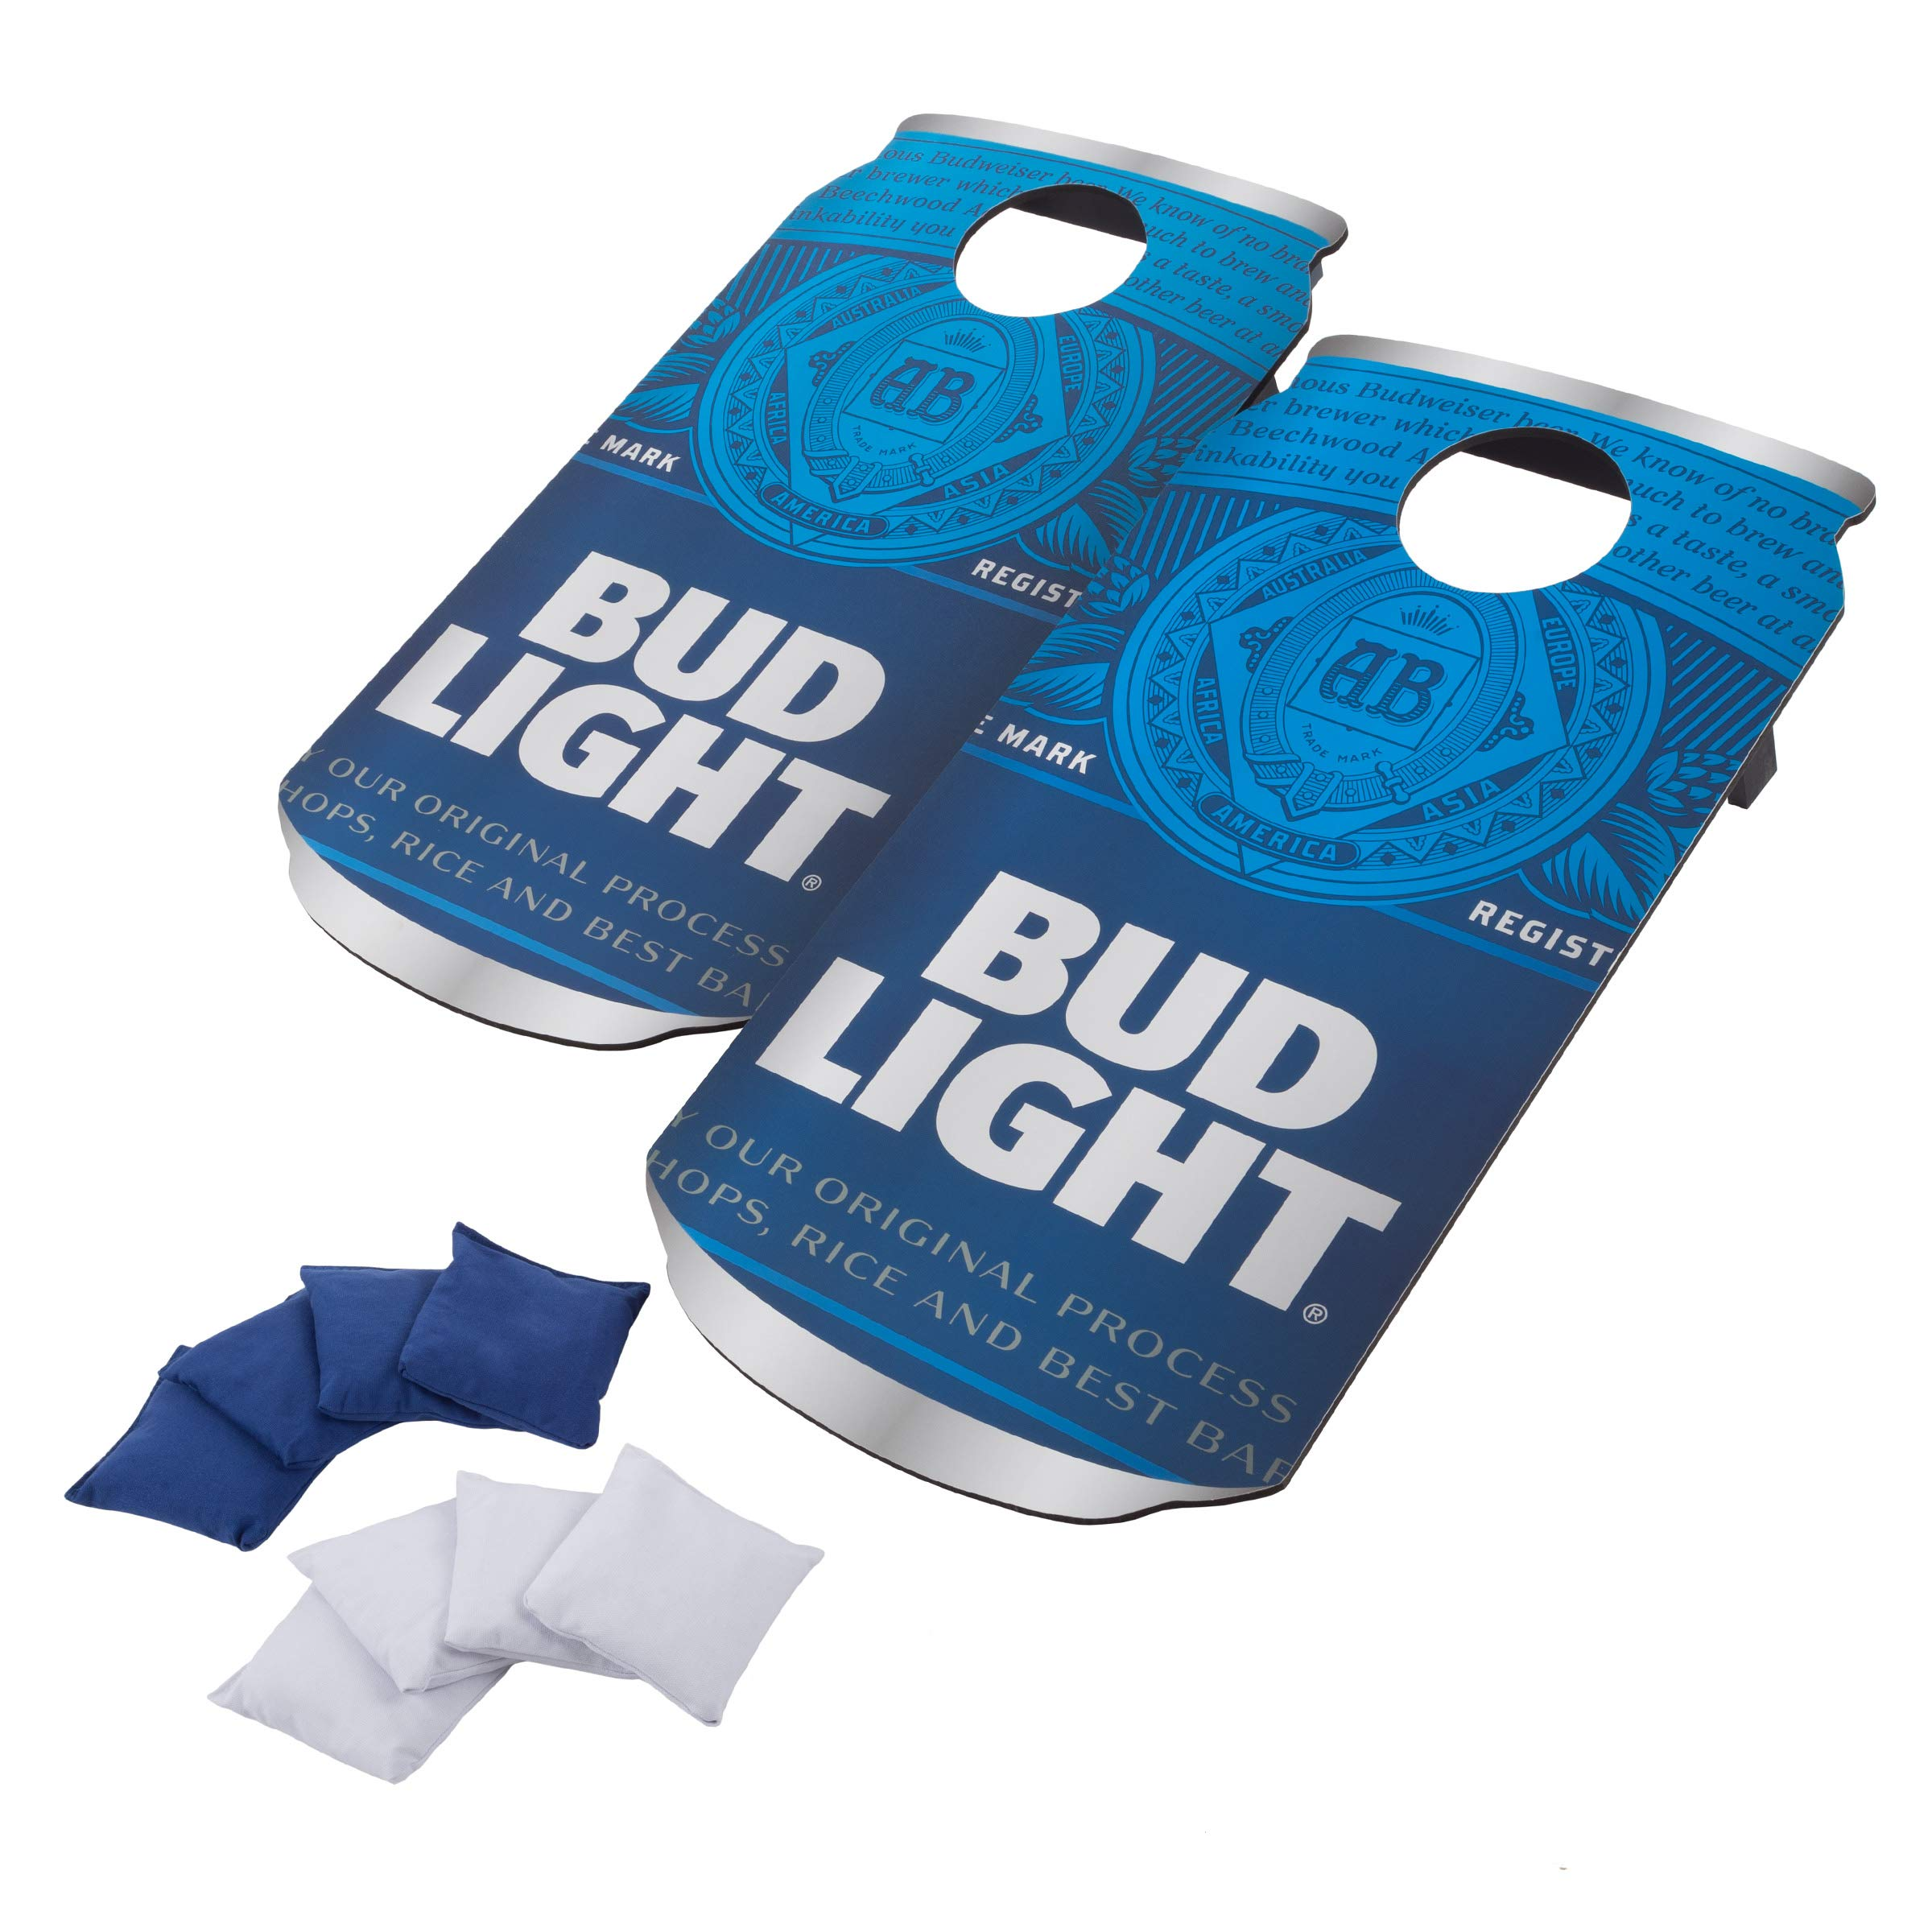 Bud Light Cornhole Outdoor Game Set, 2 Wooden Anheuser-Busch Can-Shaped Corn Hole Toss Boards with 8 Bean Bags by Bud Light